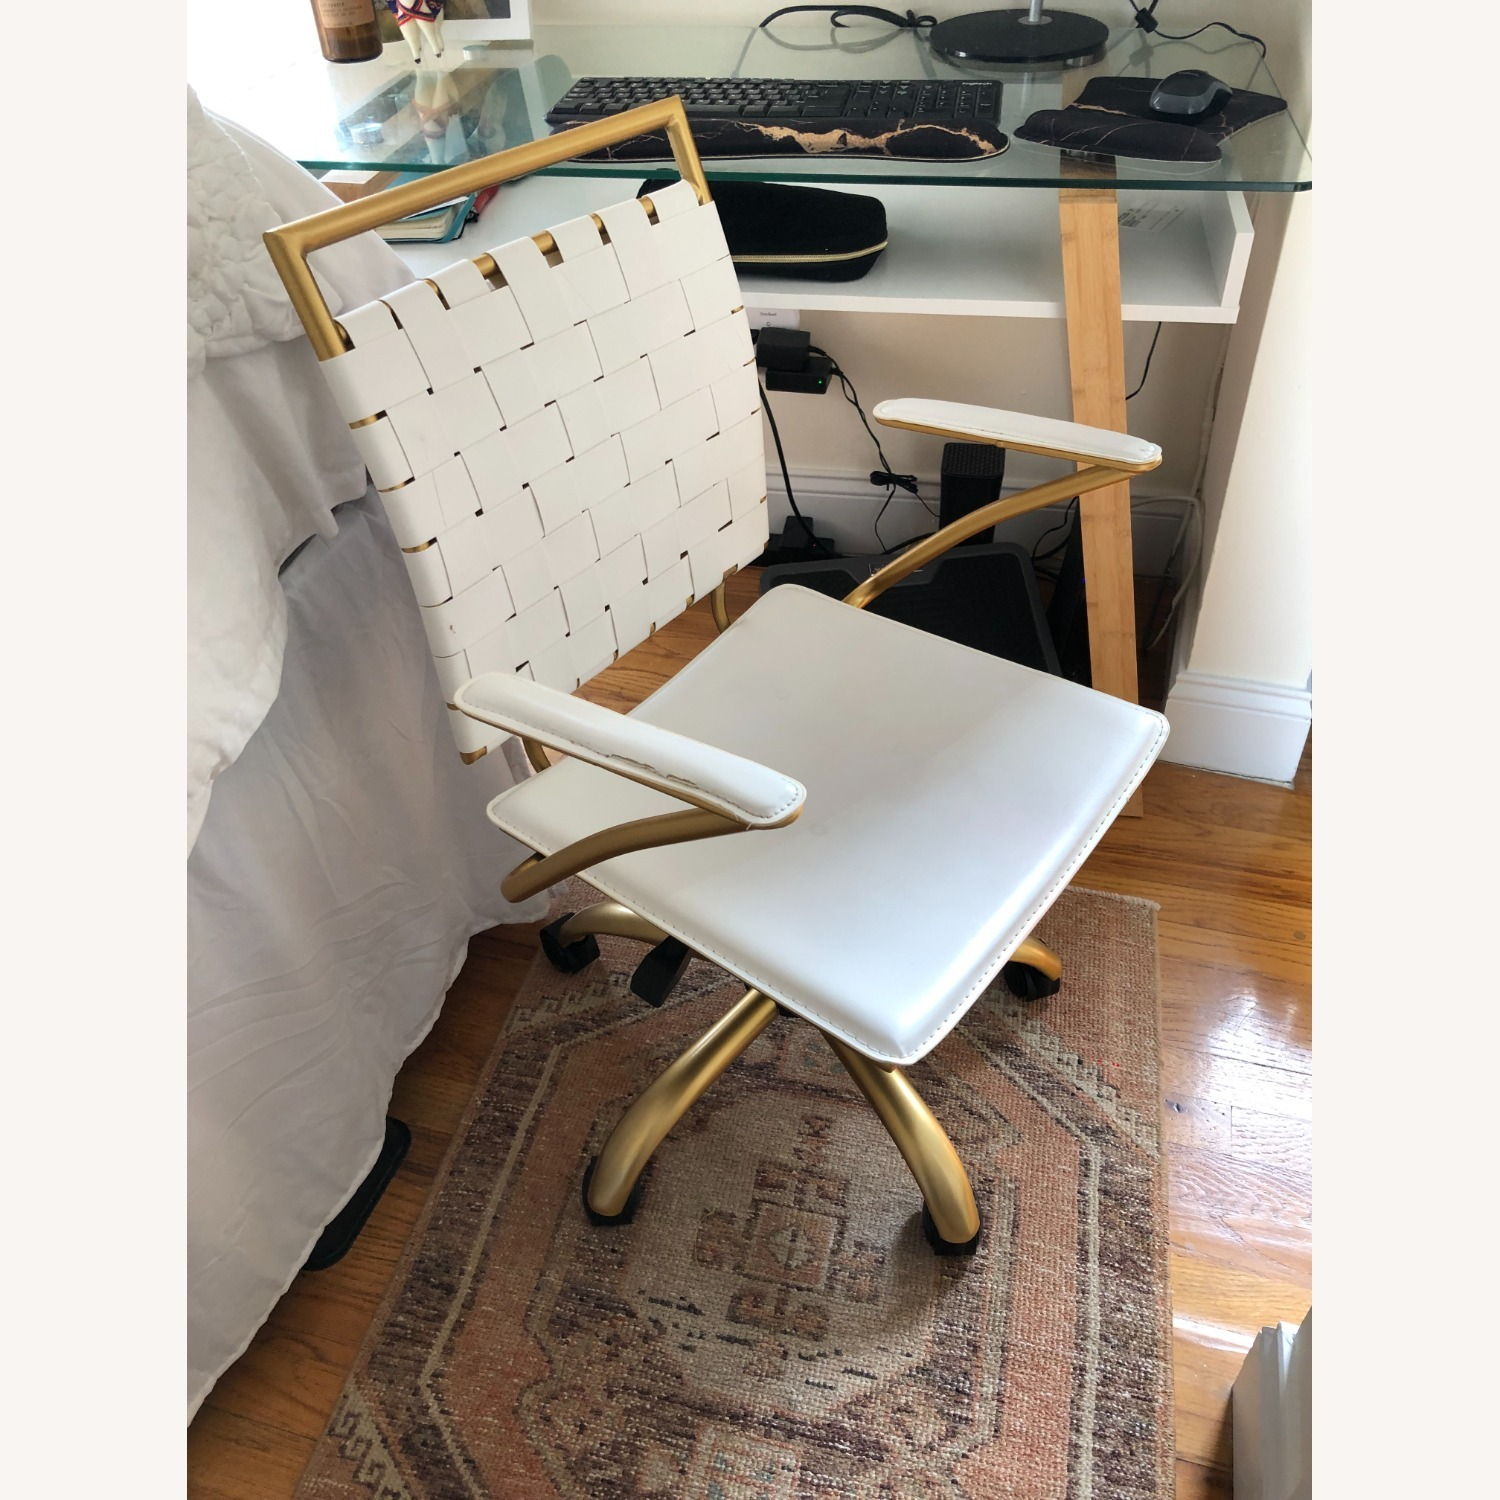 Wayfair Woven White and Gold Desk Chair - image-6